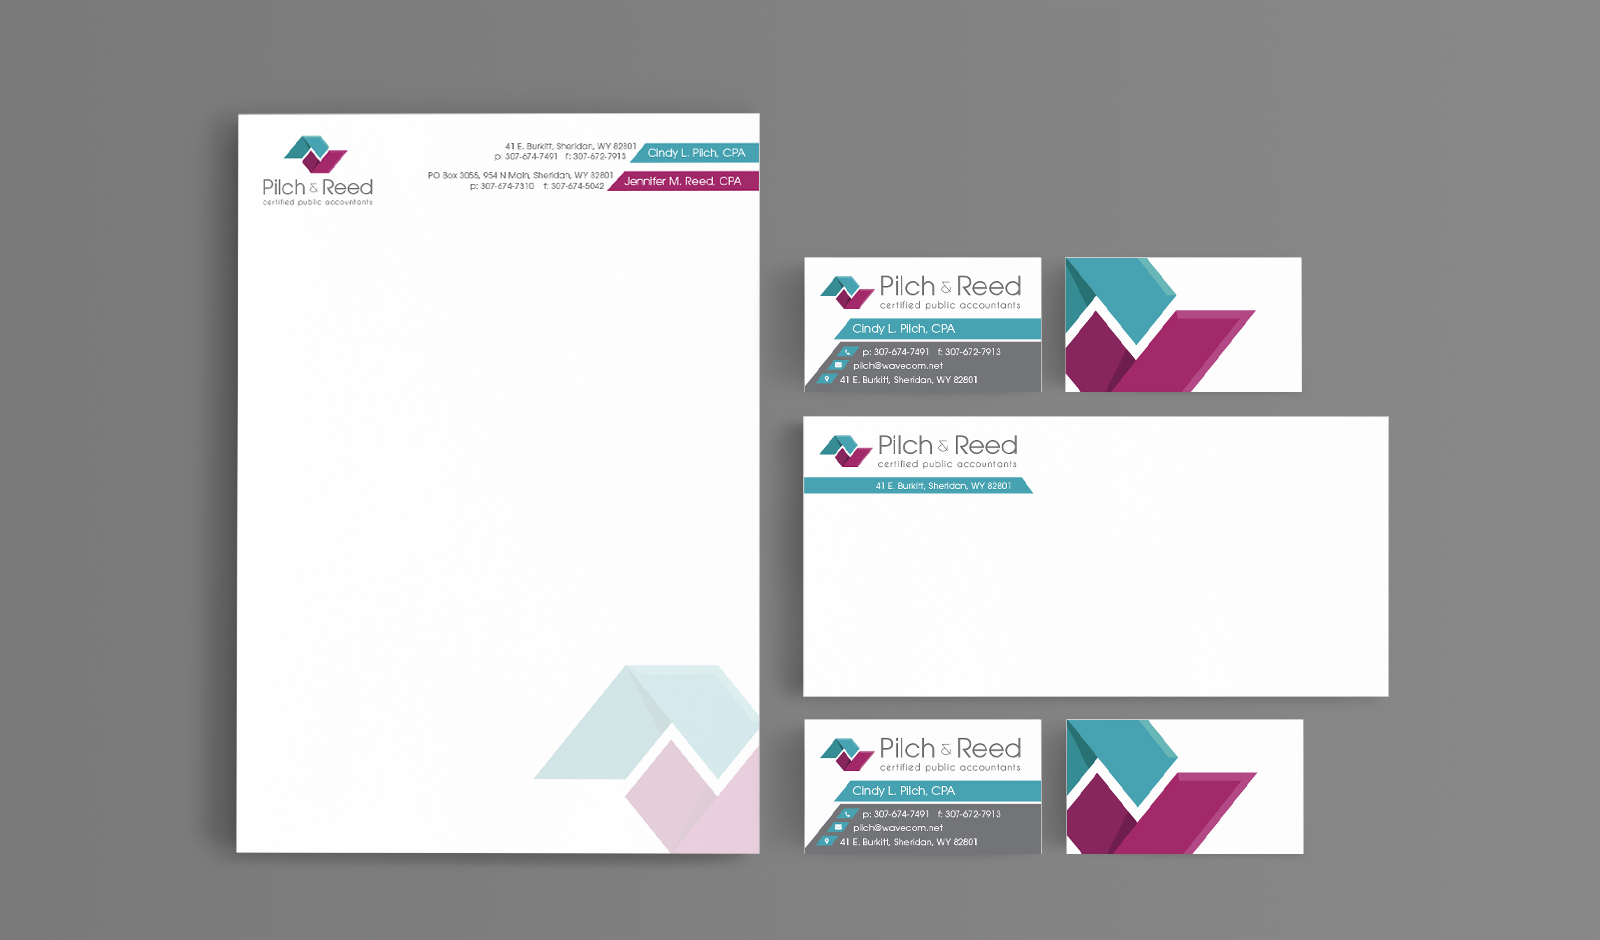 Pilch and Reed CPA stationary design